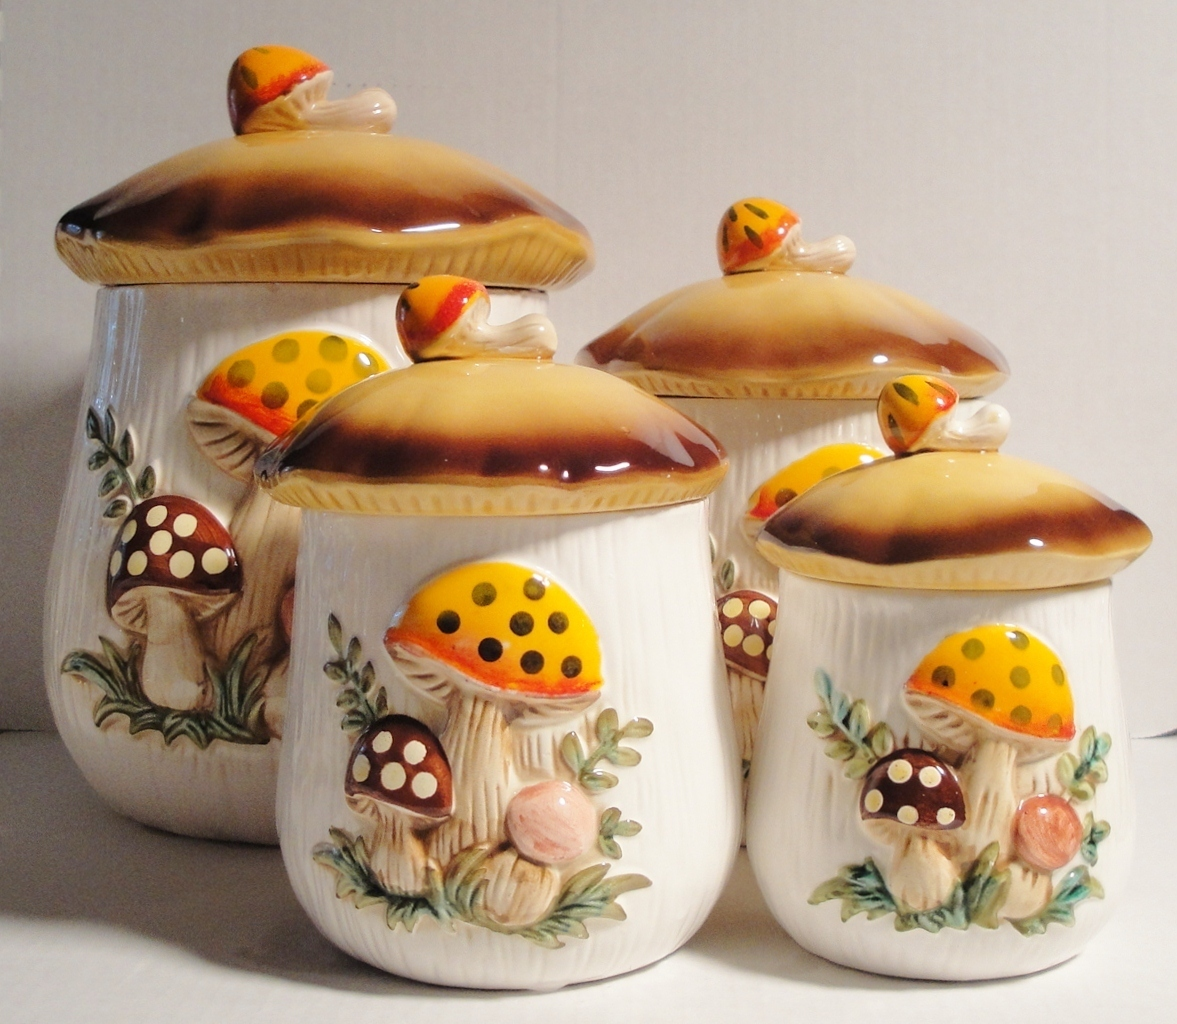 SEARS AND ROEBUCK COMPANY VINTAGE RETRO CANISTER SET, MERRY MUSH